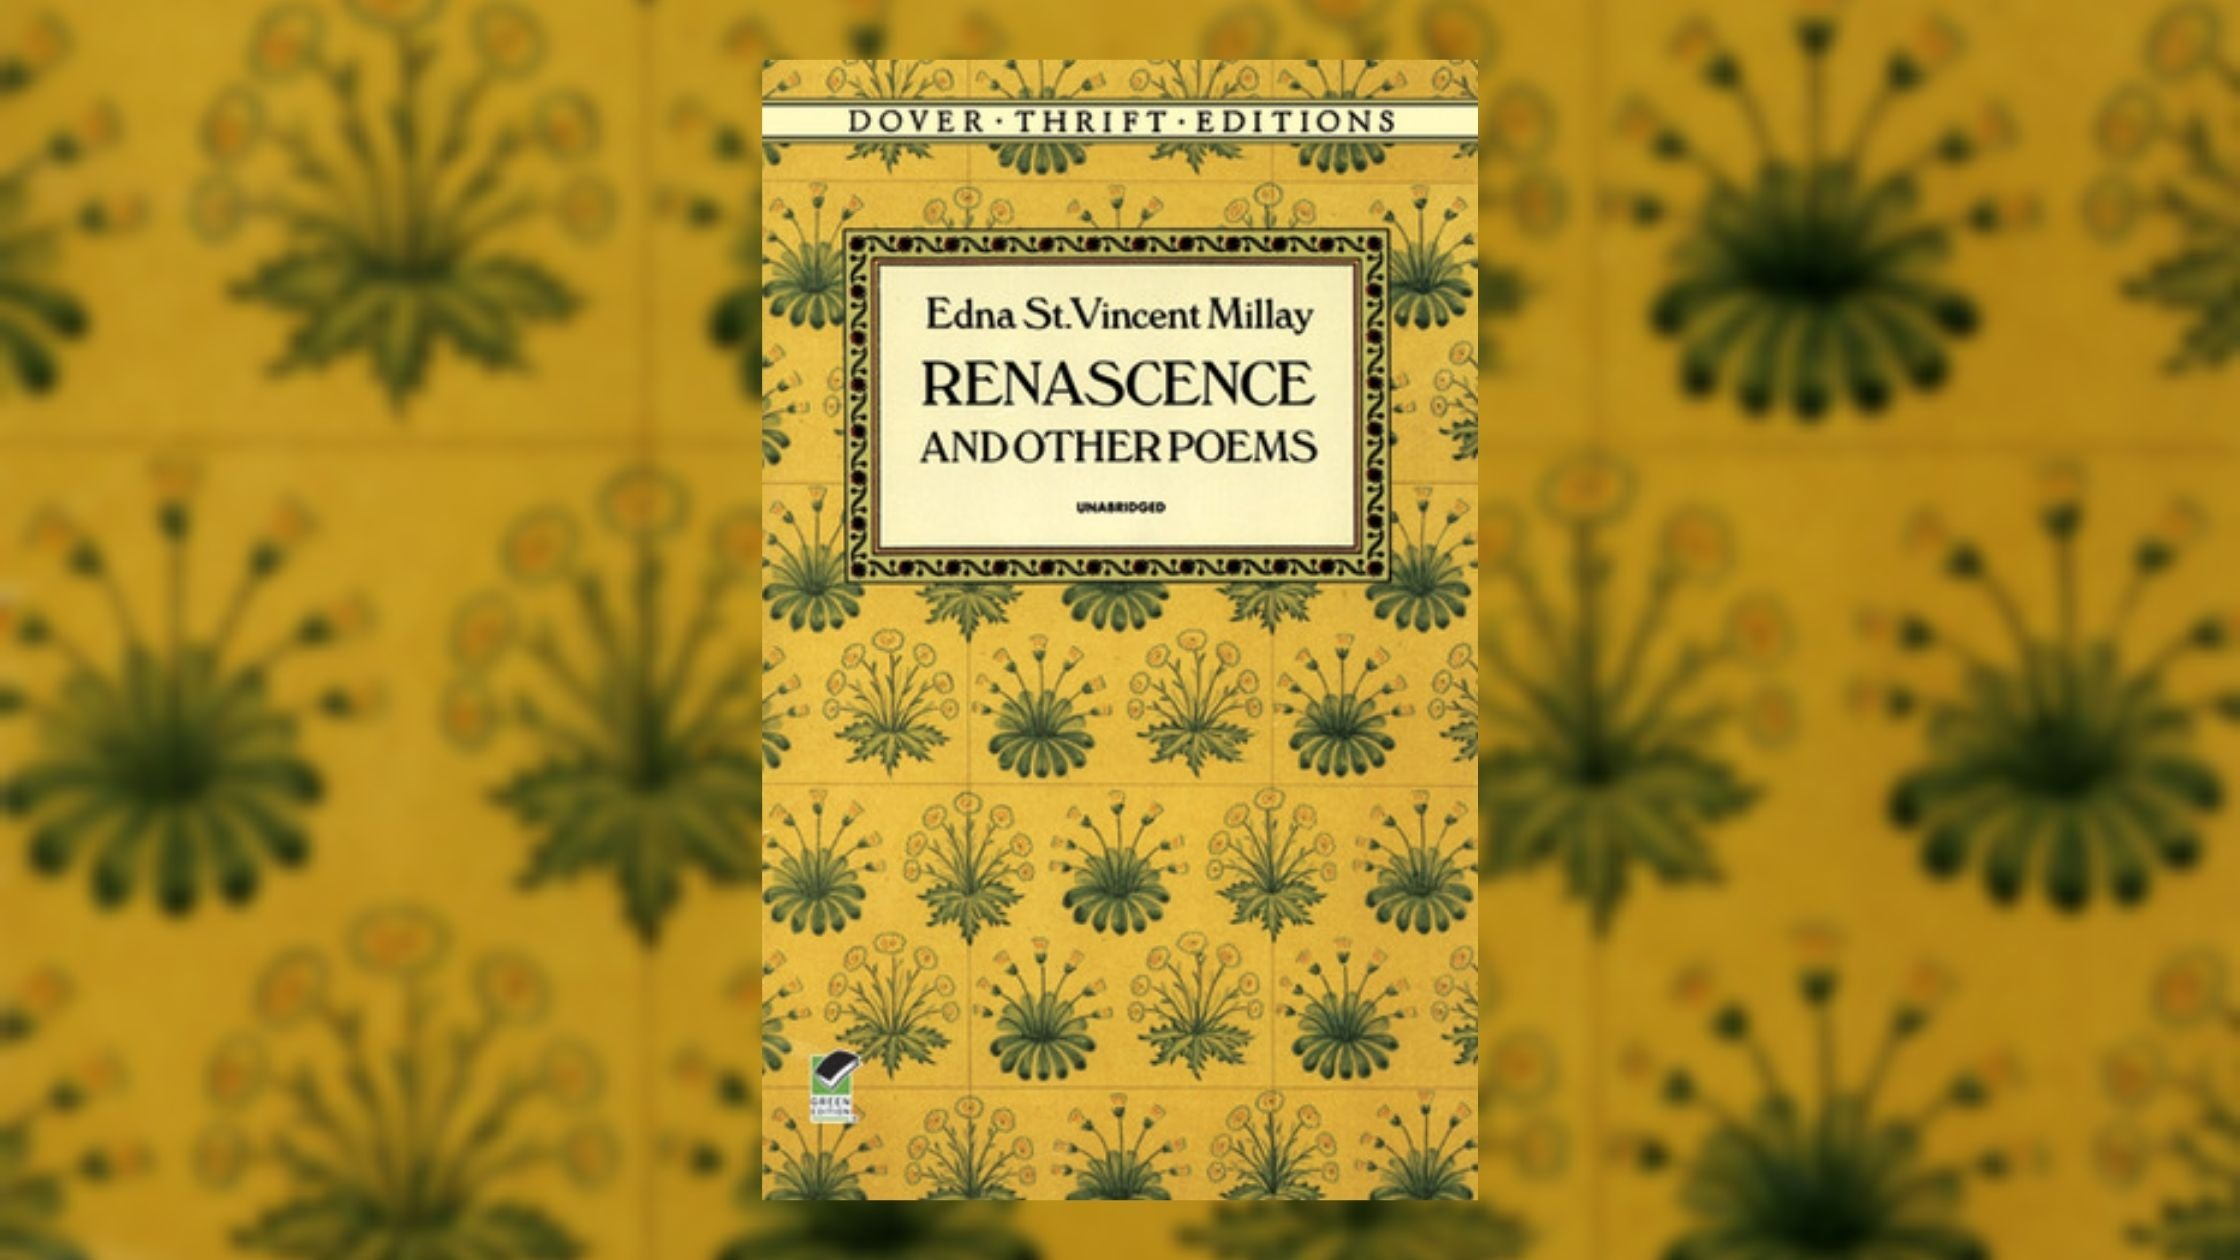 Saint Edna Vincent Millay – Life and Recommended Works